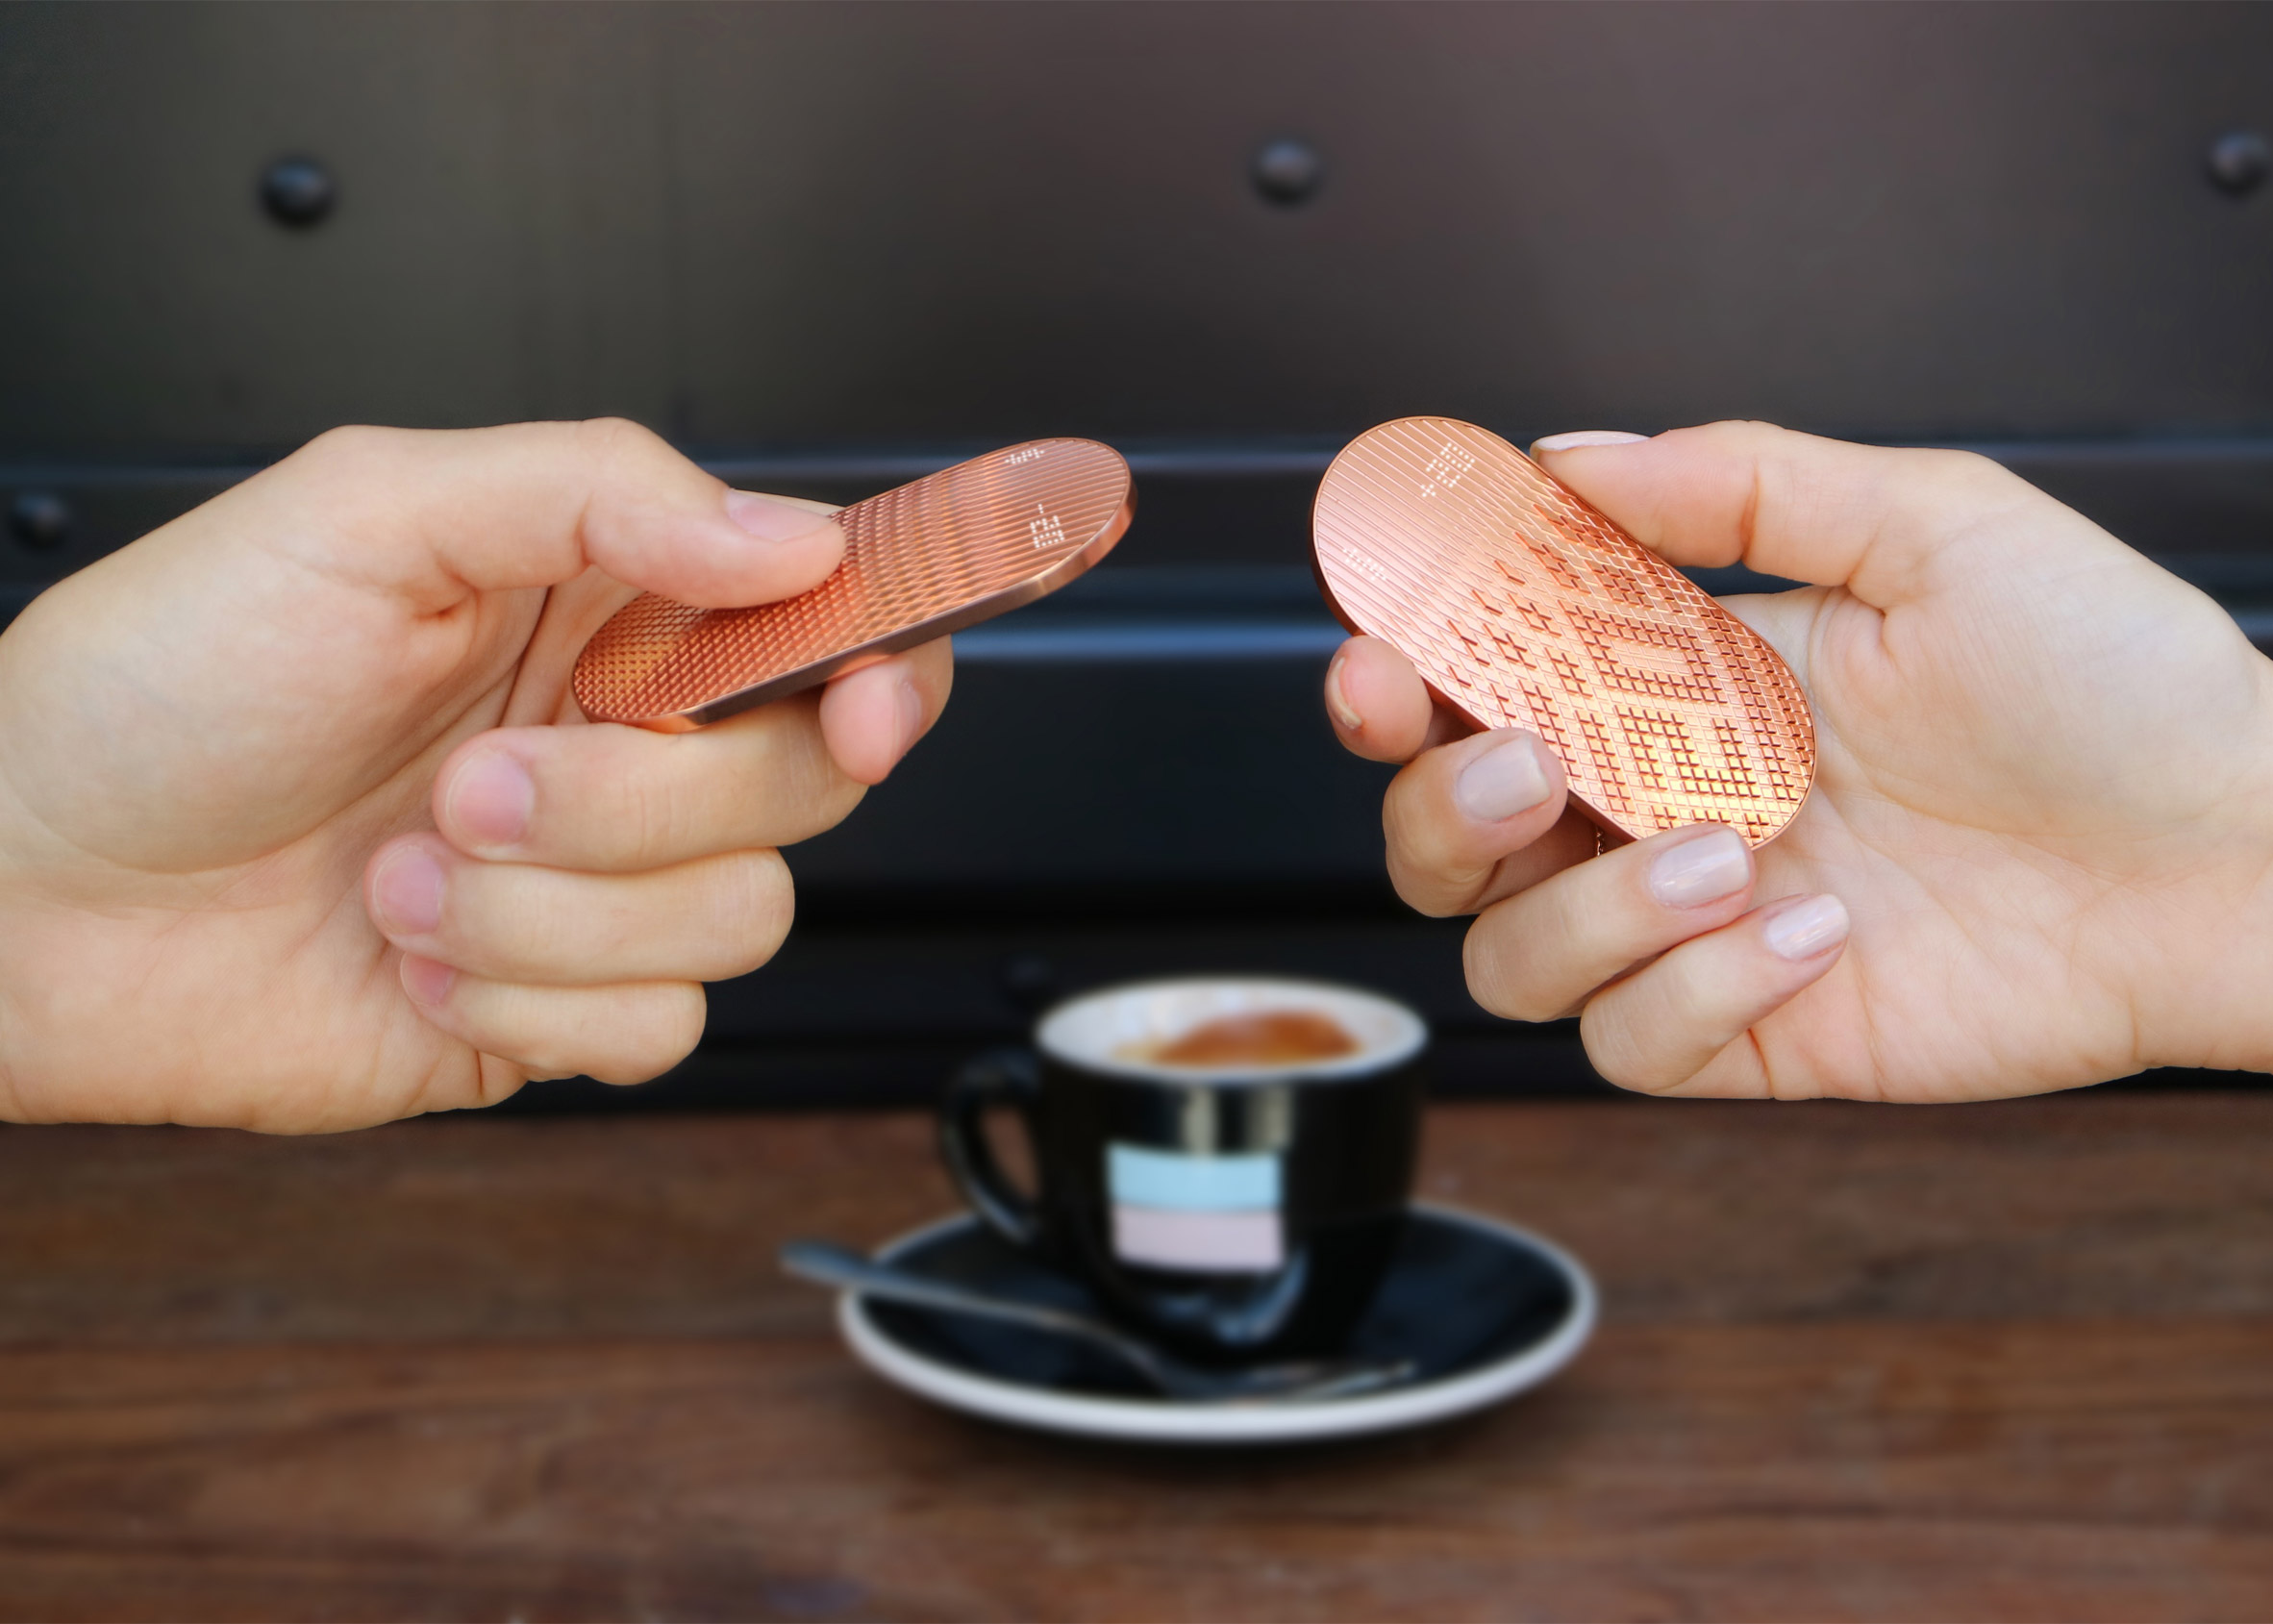 NewDealDesign's Scrip device brings tactility to digital payments